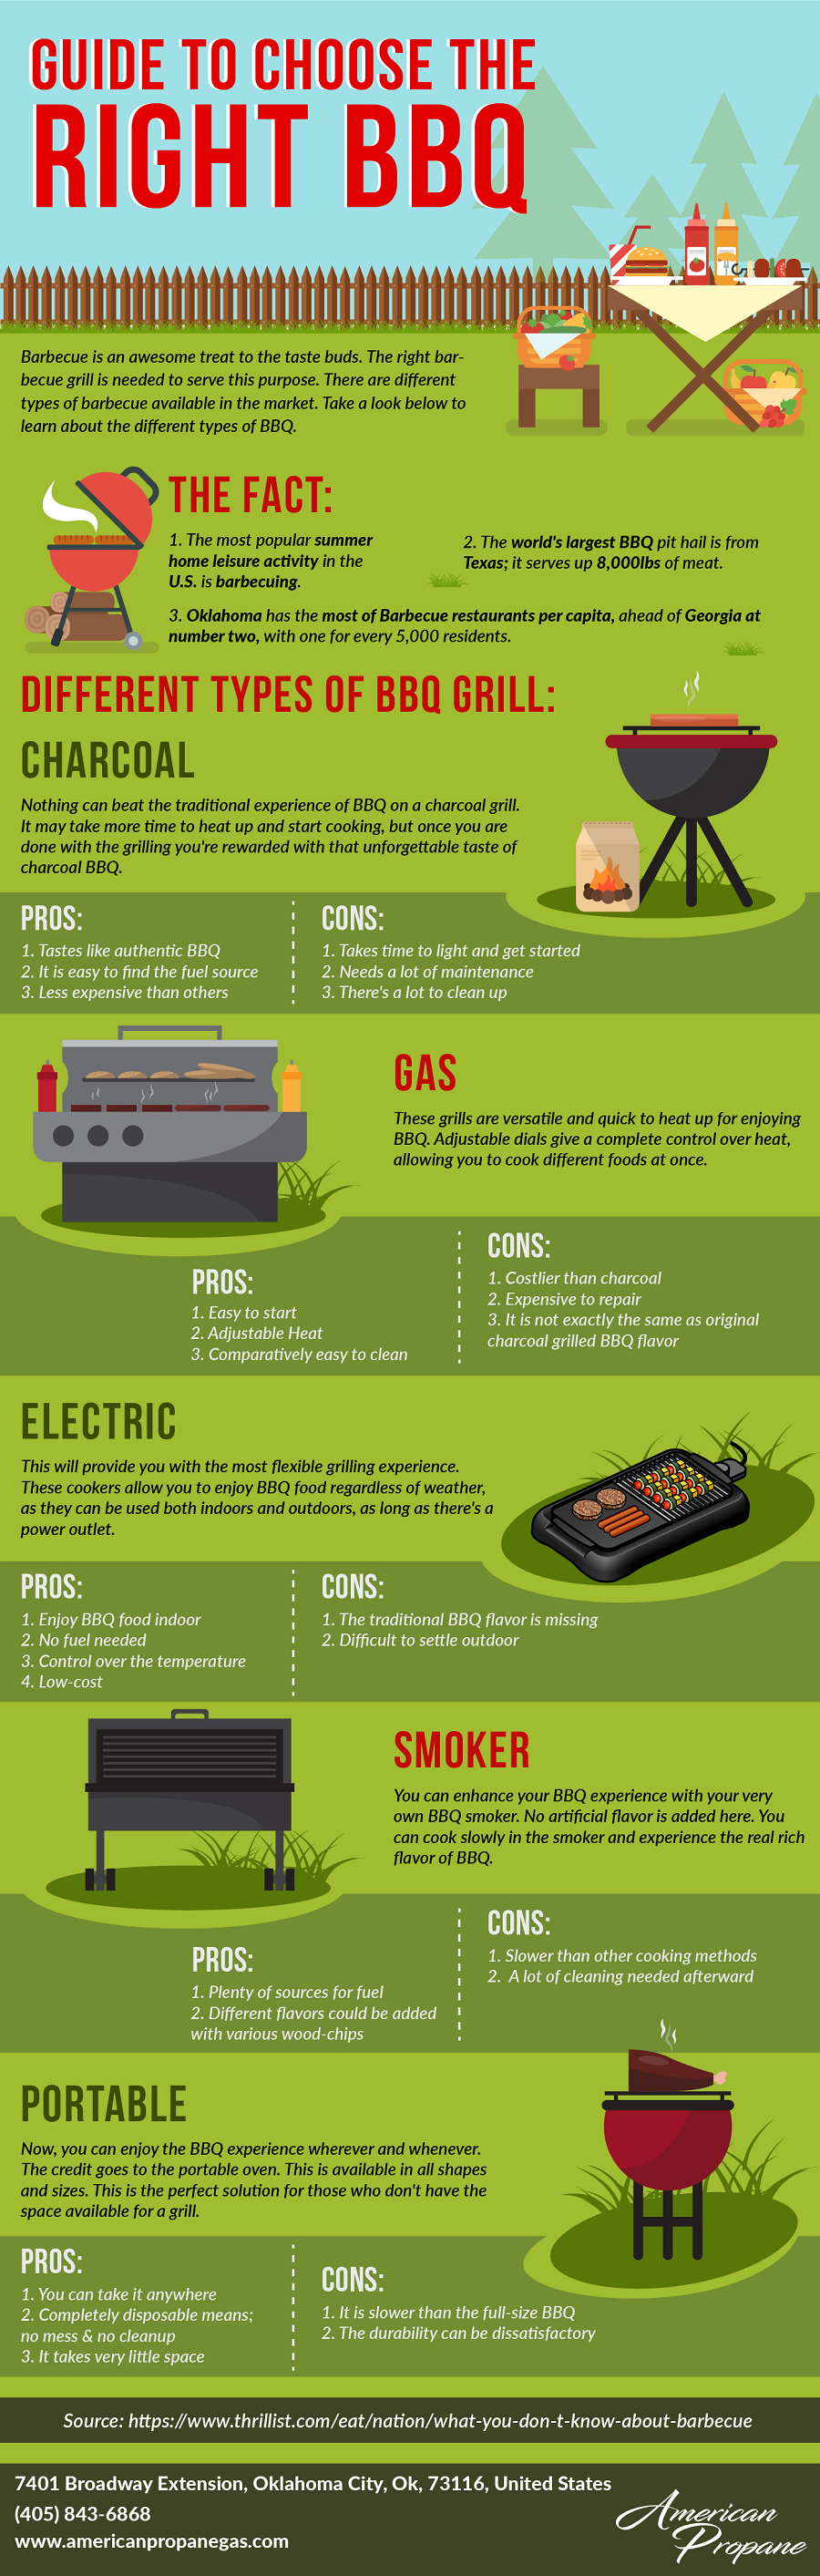 A Guide To Choosing The Right BBQ